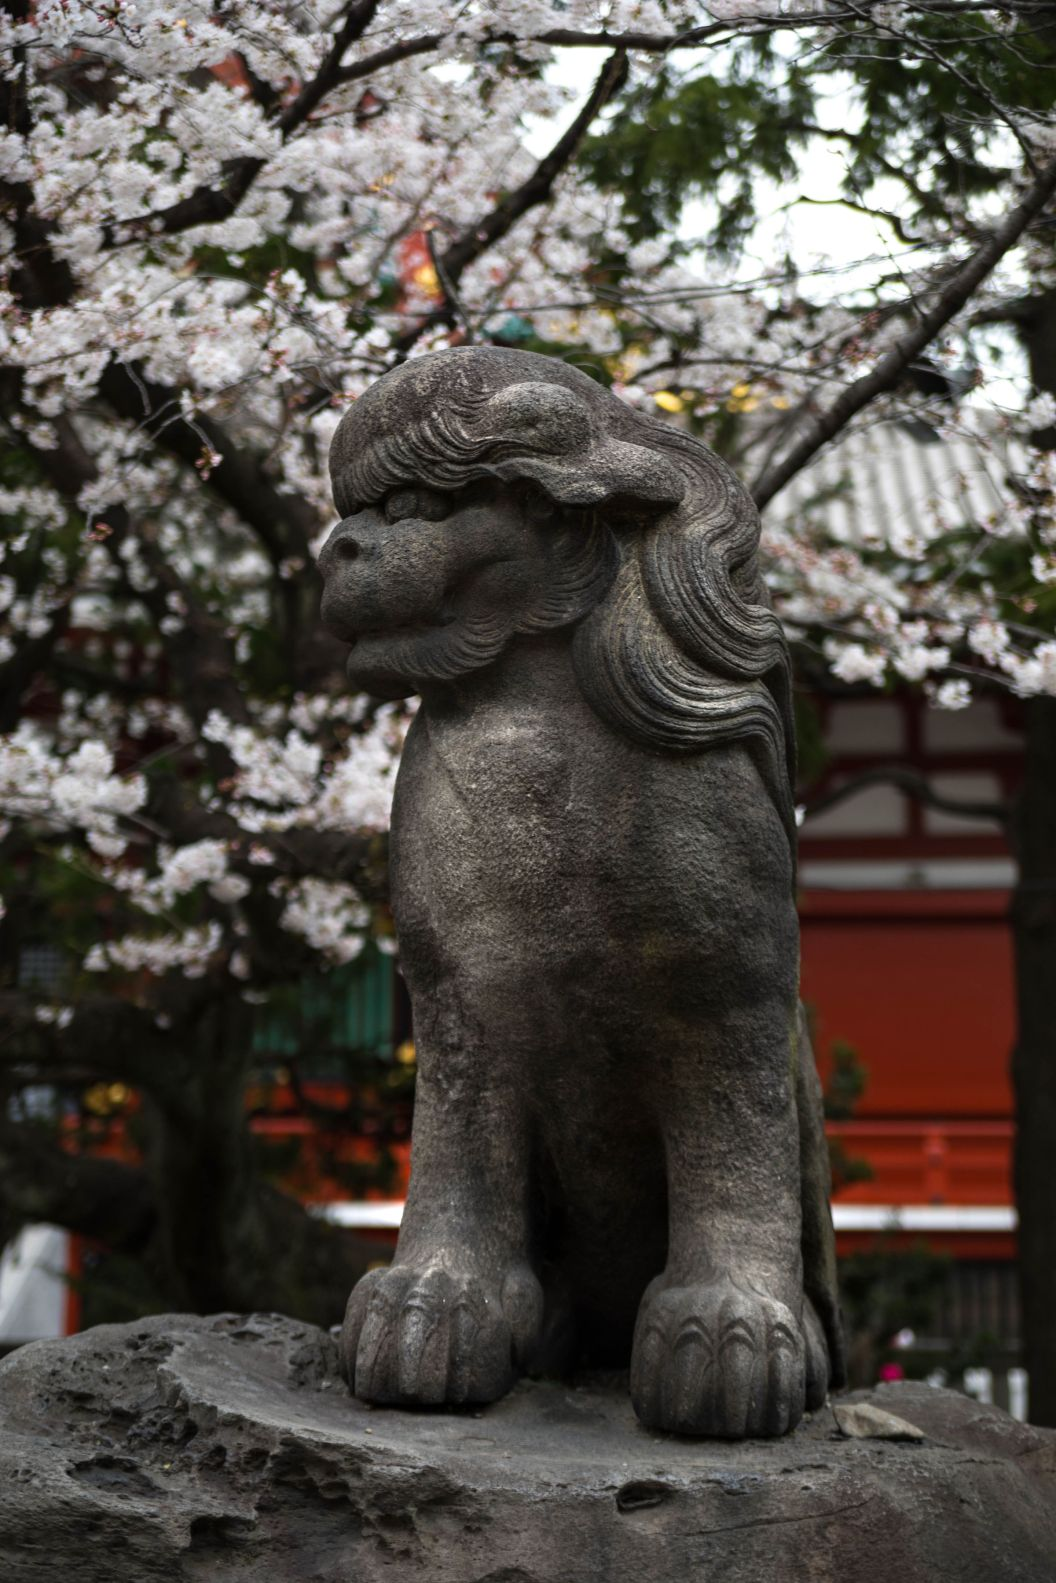 Stone Lion at Senso-Ji Temple Asakusa Kannon Buddhist Temple in Tokyo, Japan Shrine with Massive Red Japanese Paper Lanterns Near Tokyo Sky Tree Goddess of Mercy by Annie Fairfax Where to Visit Tokyo Things to do In Tokyo, Japanese Travel Tourism Trip Inspiration Pictues of tokyo Japan